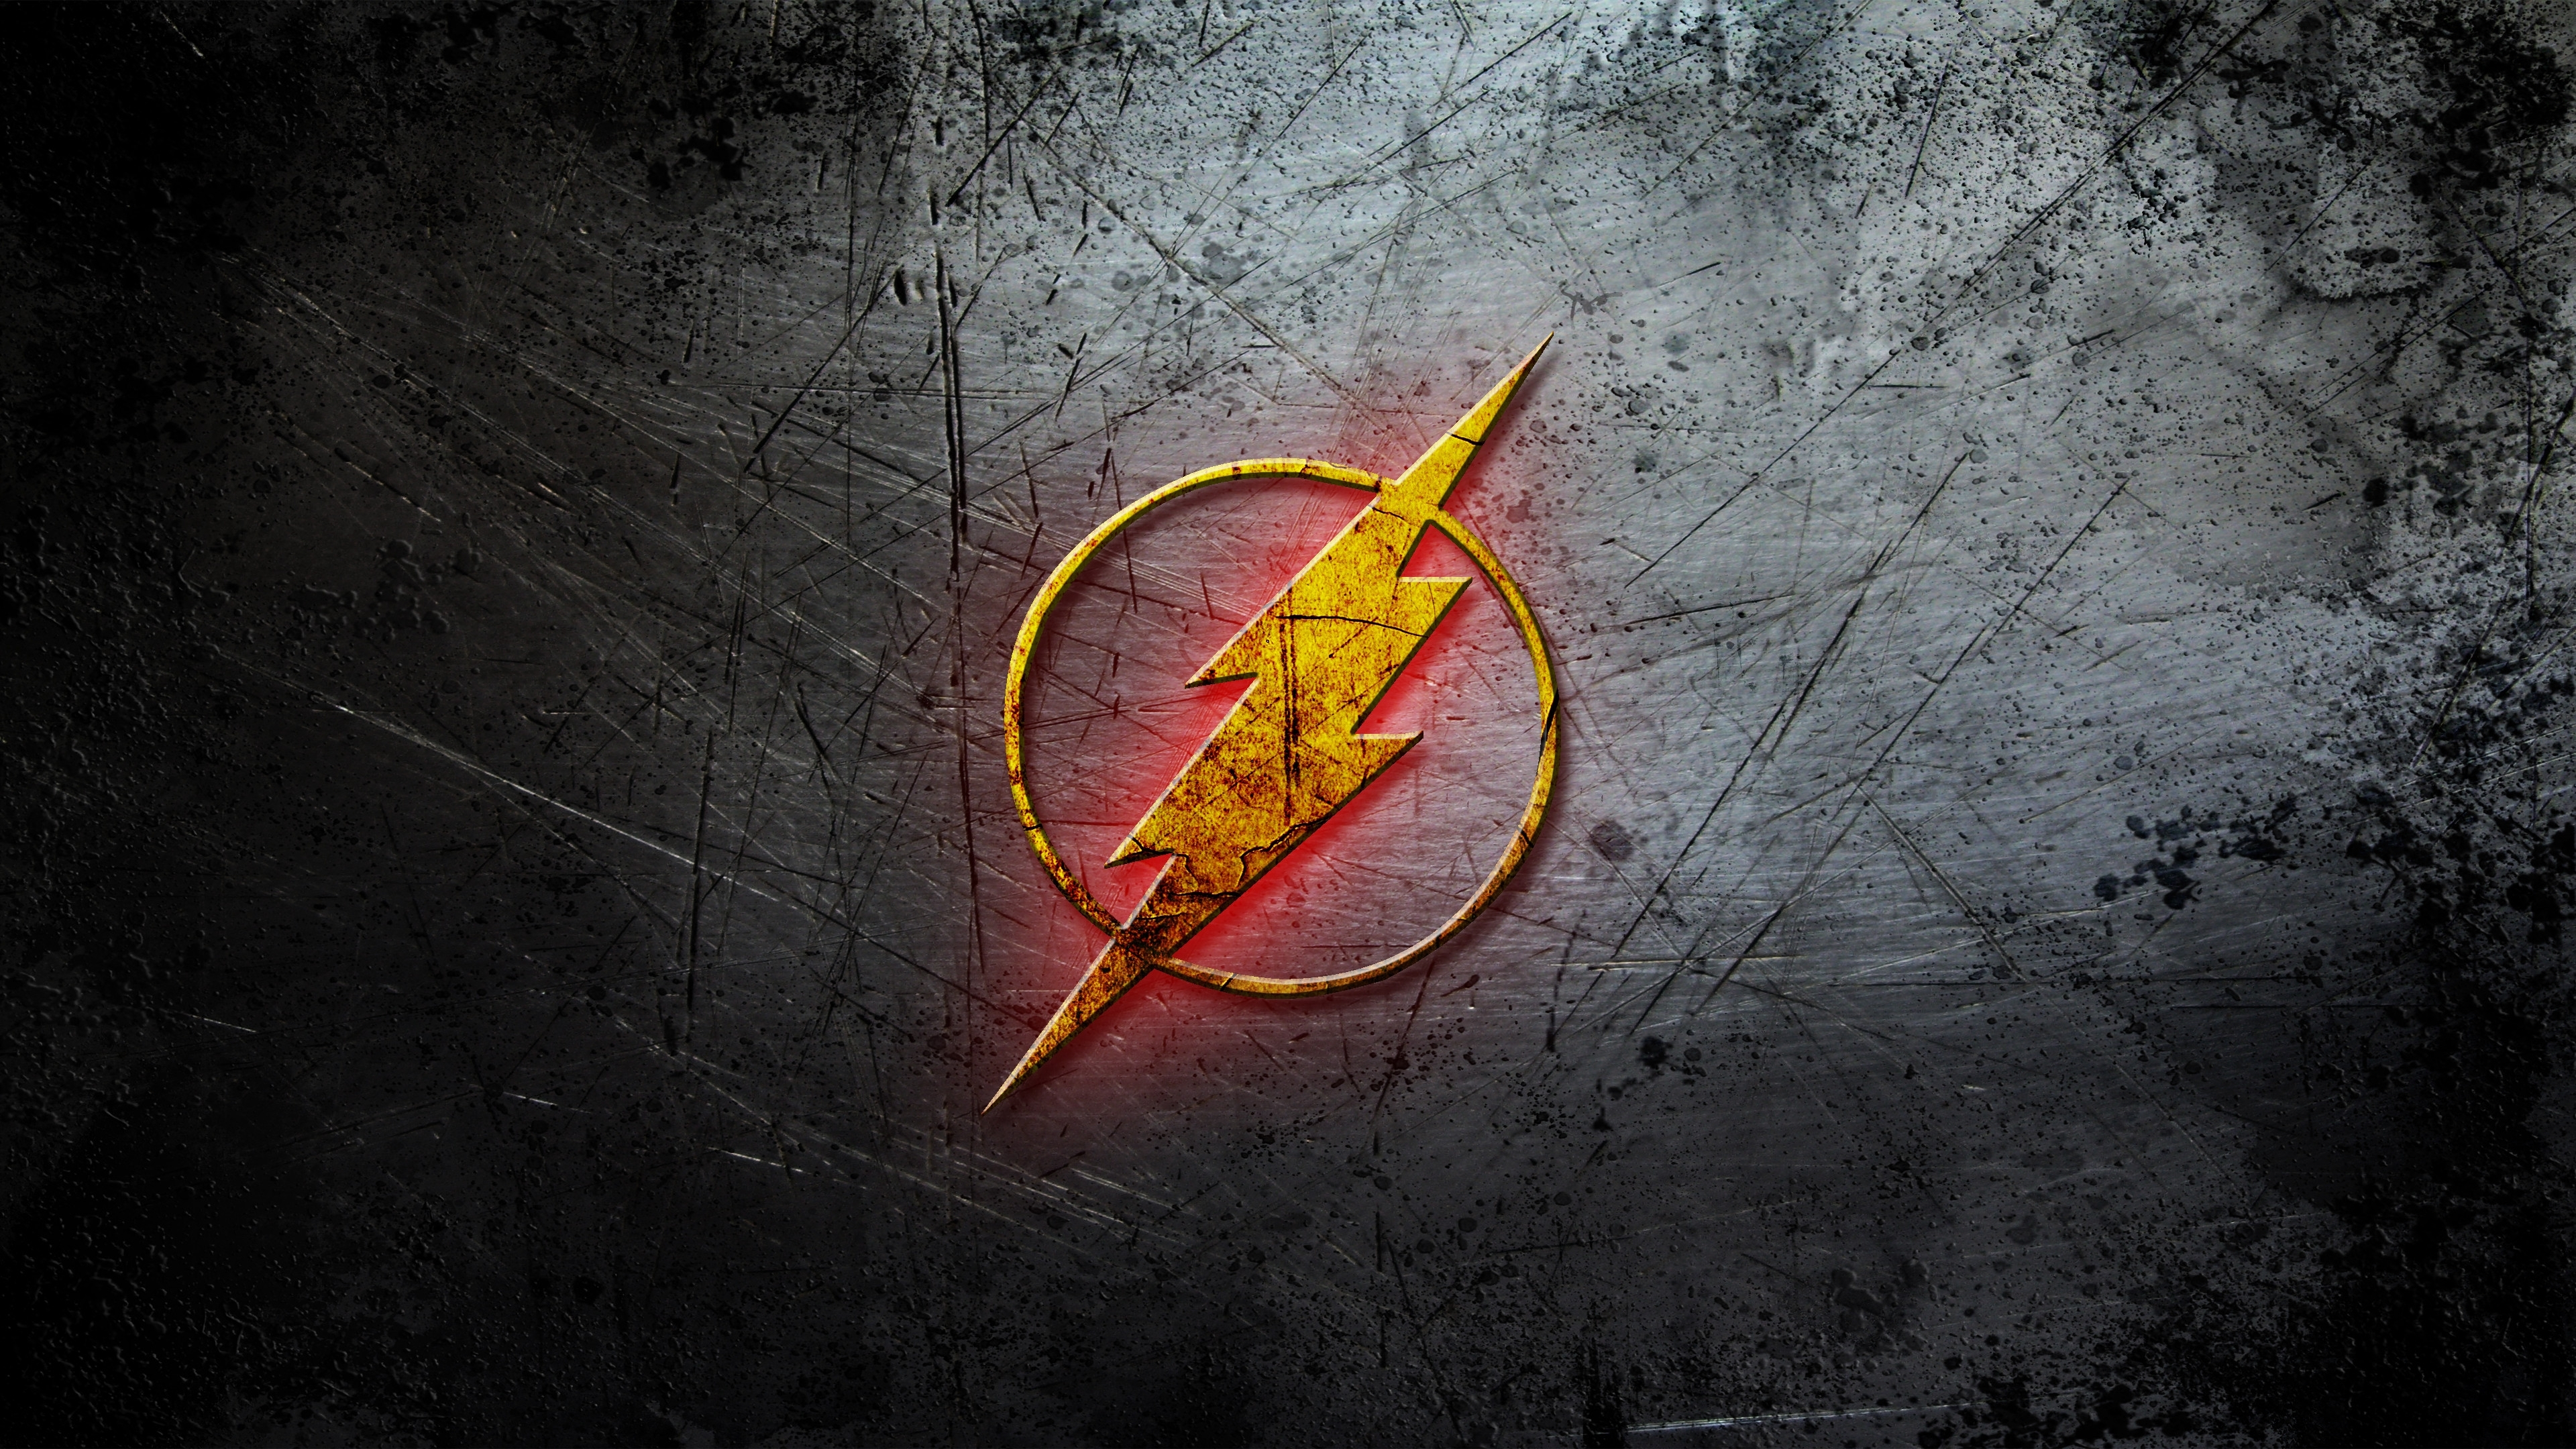 205 flash hd wallpapers   background images - wallpaper abyss